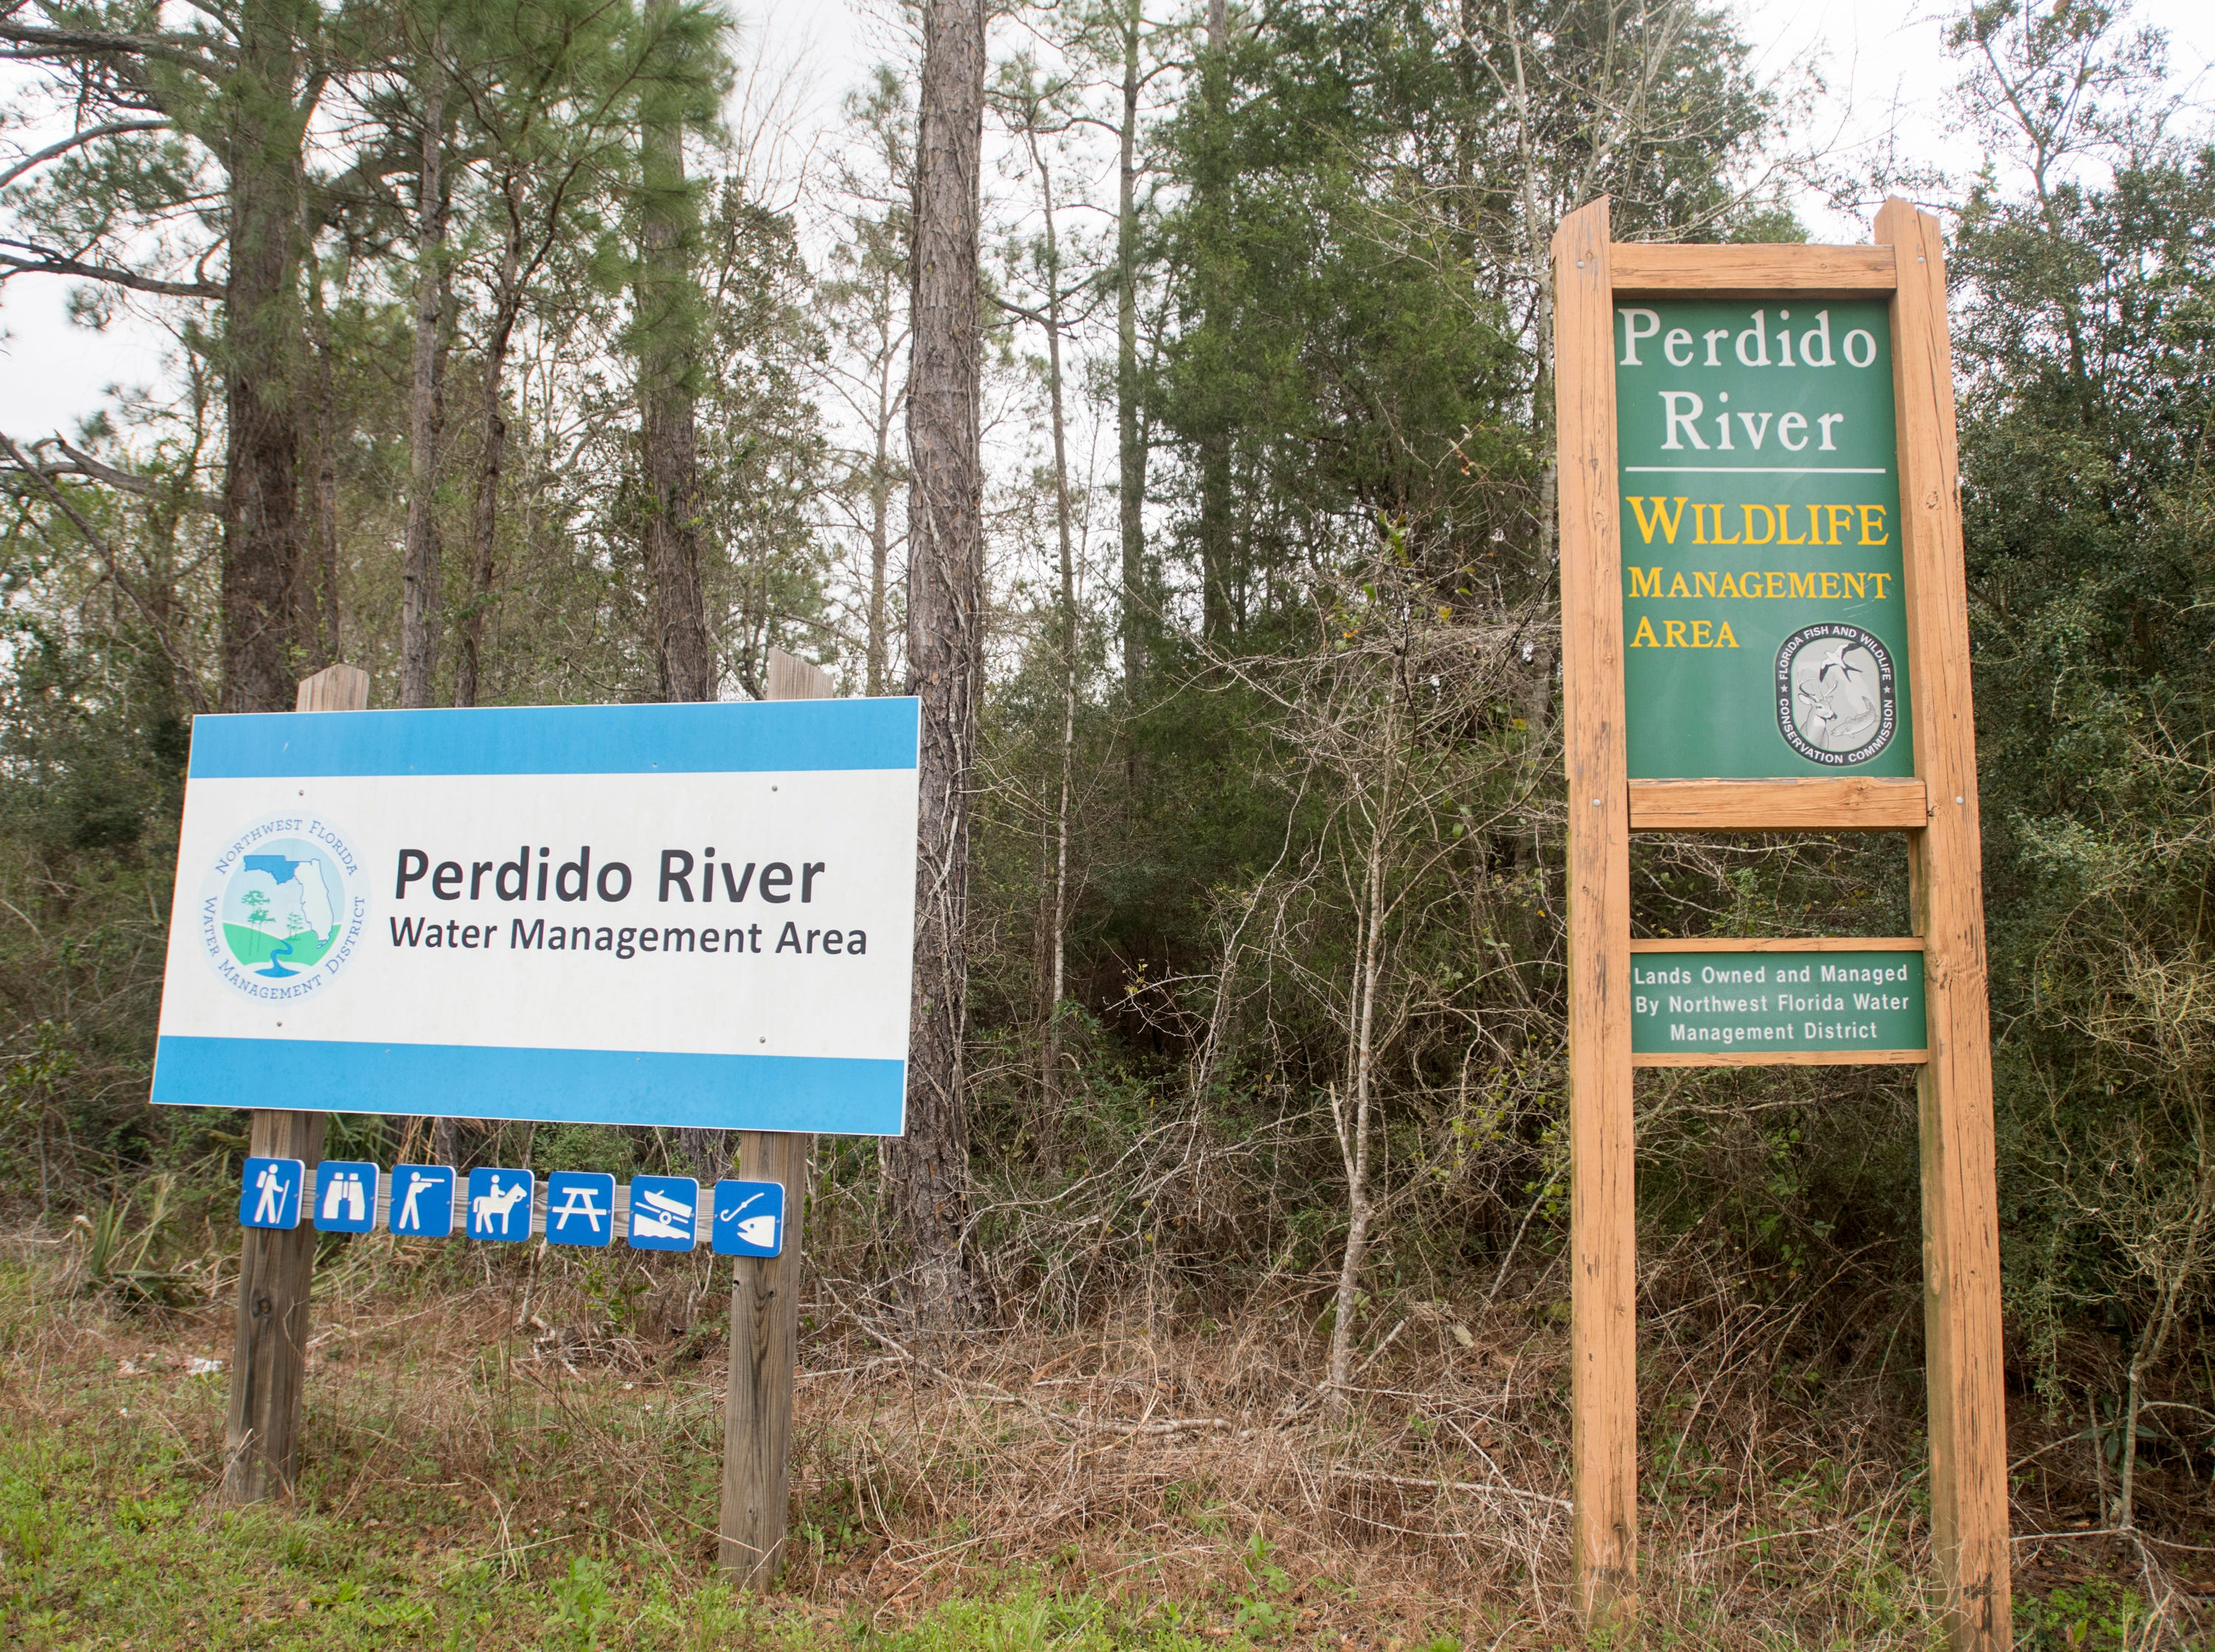 Perdido River signs in Pensacola on Monday, March 11, 2019.  Paddle Florida is hosting 60 paddlers on a 5-day, 60-mile journey from Otto Hill to Perdido Pass.  Florida is currently working with Alabama to establish a paddling trail on the Perdido River.